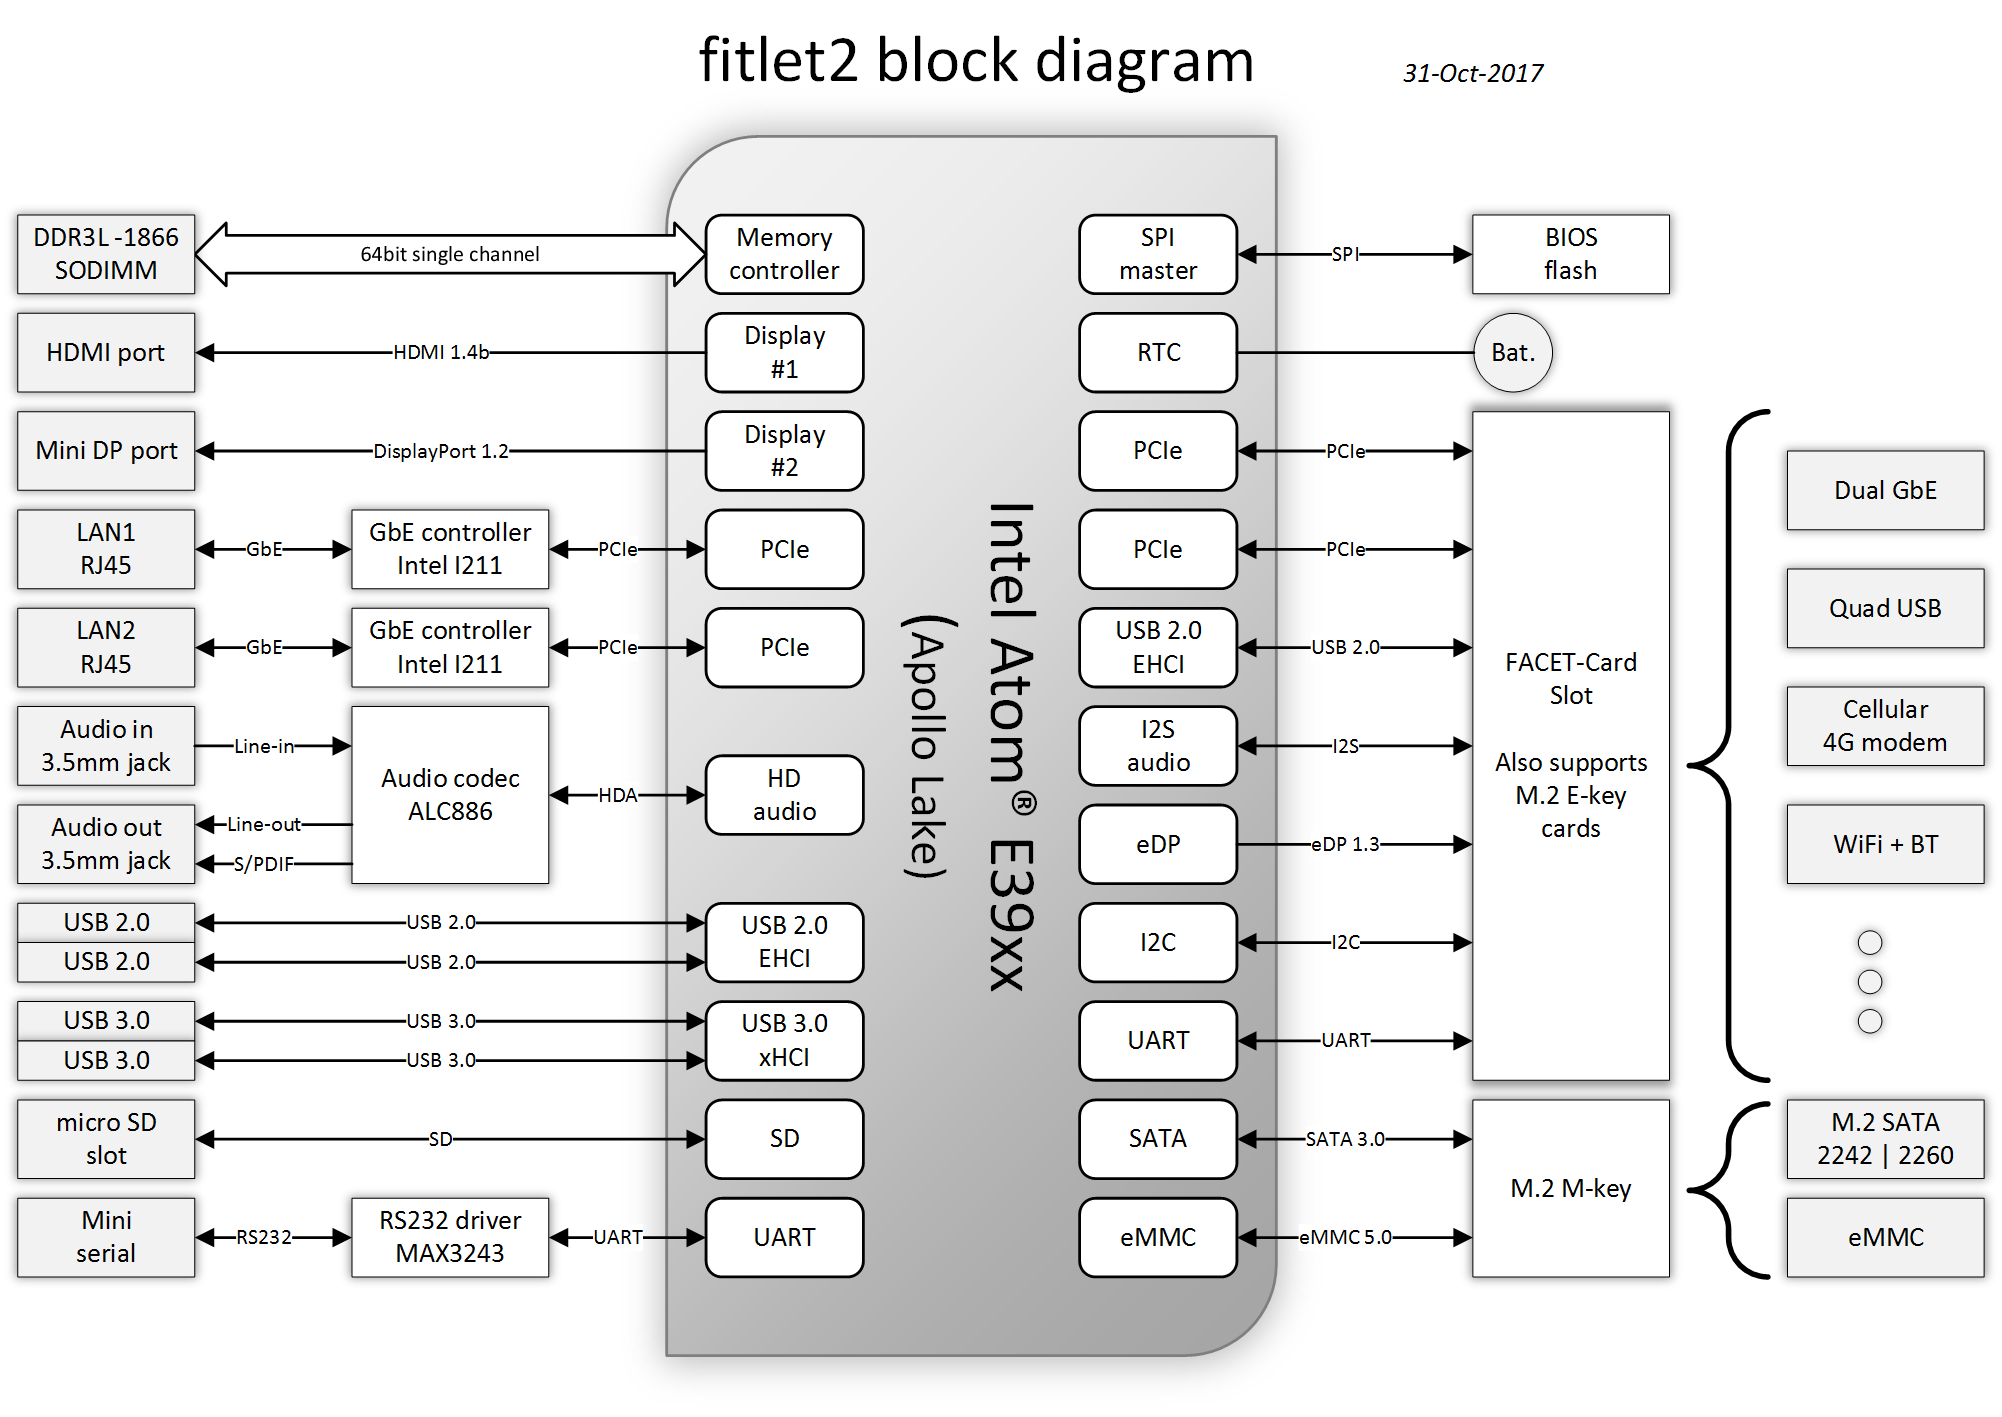 fitlet2 block diagram